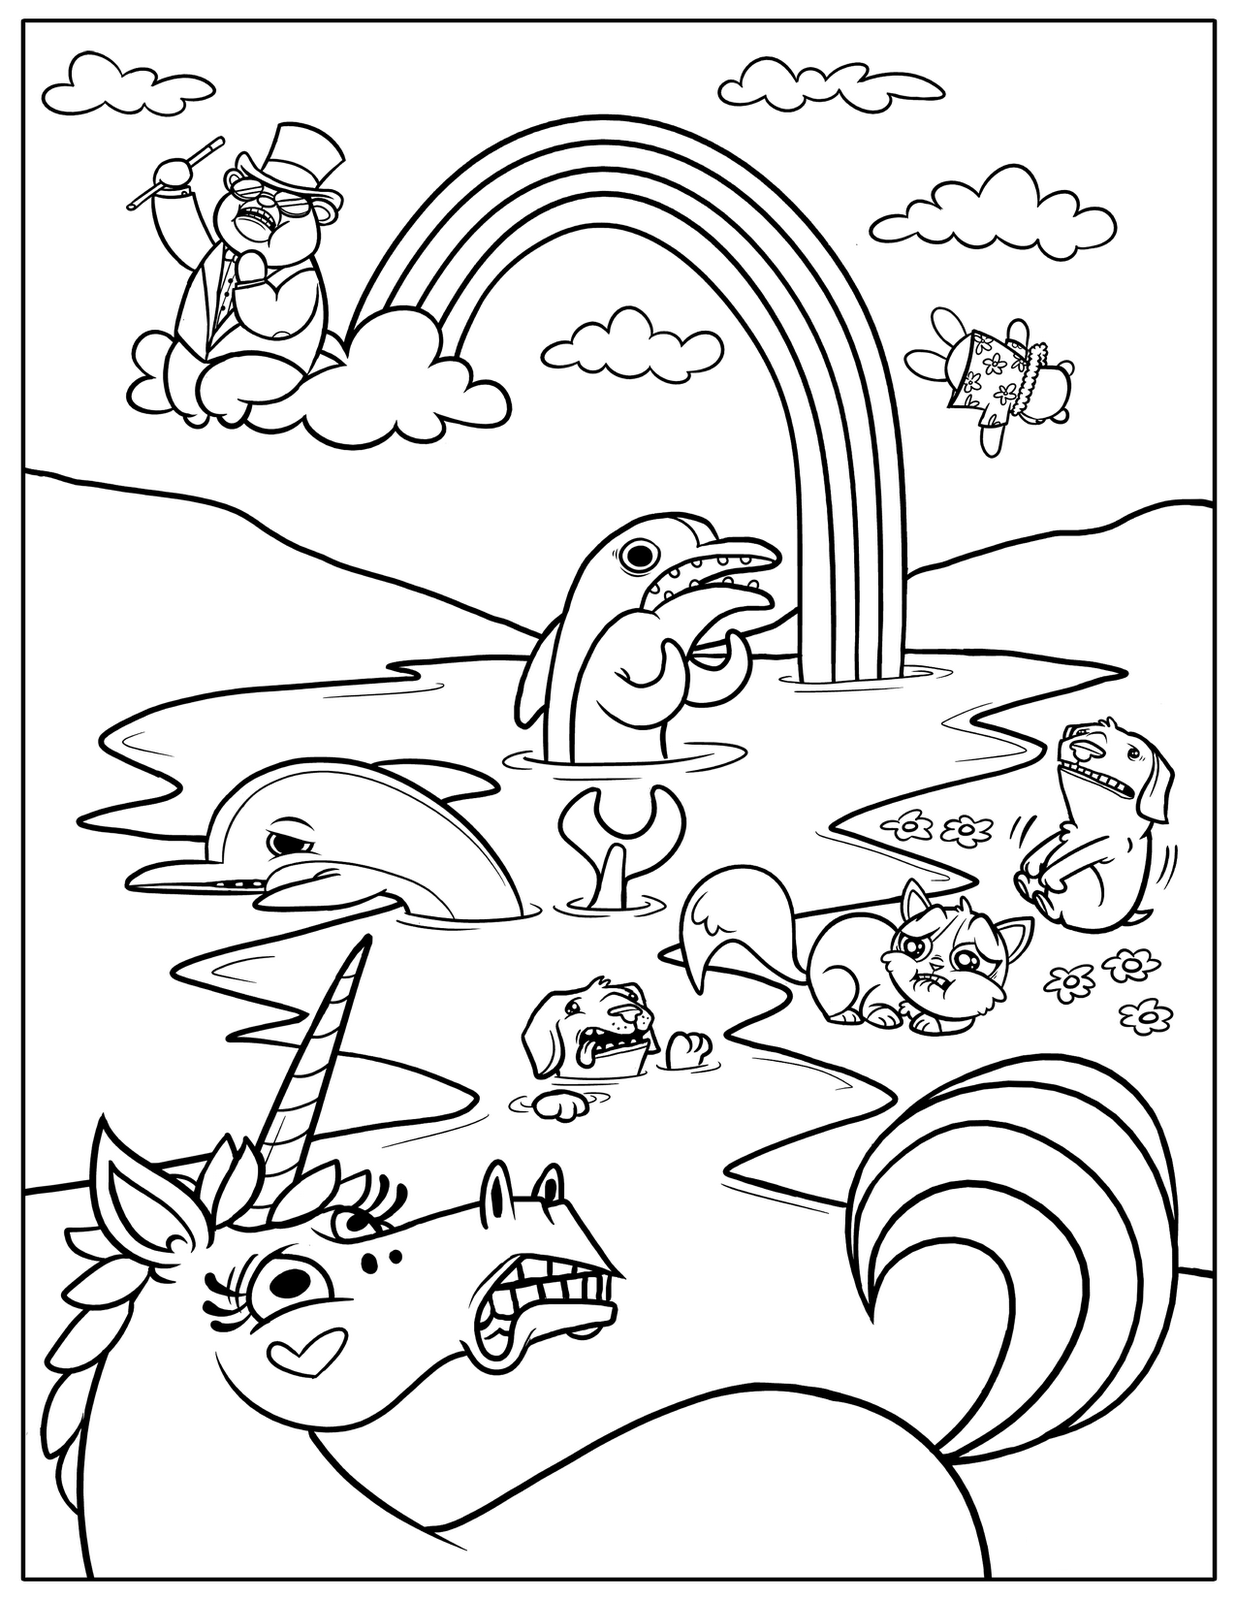 Free coloring pages com printable - Rainbow Coloring Pages Kids Printable